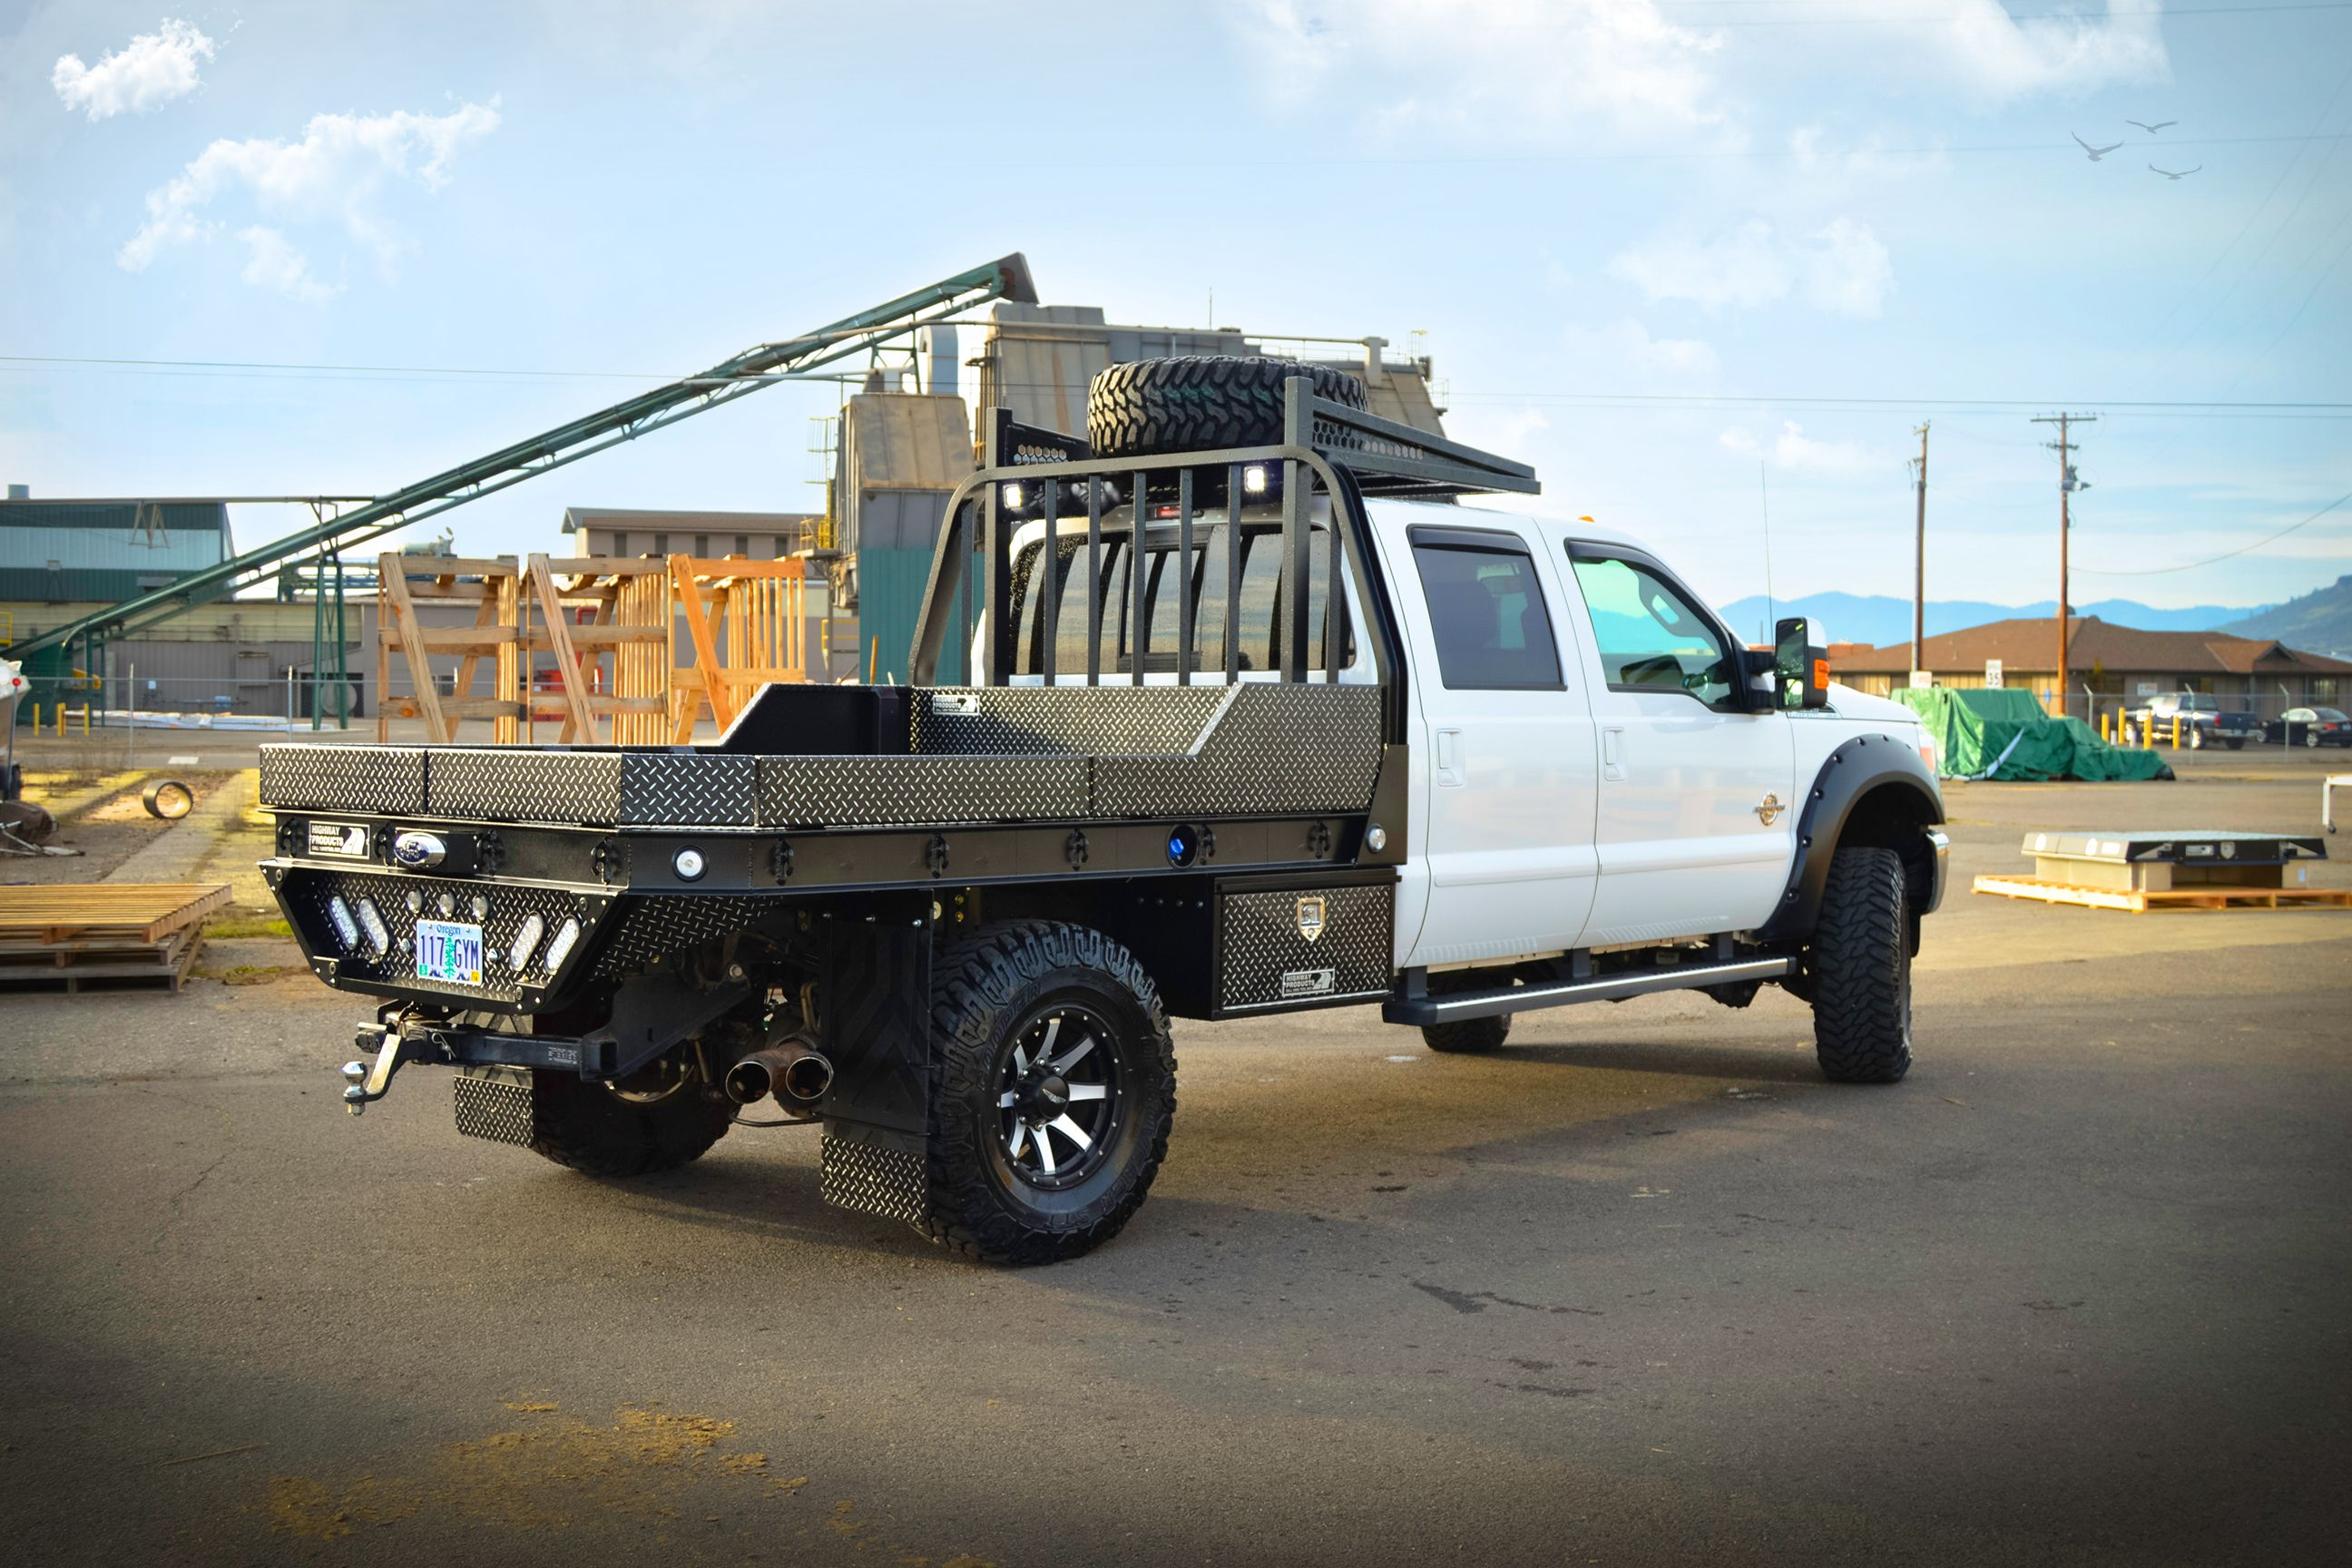 2015 Ford F350 Aluminum Flatbed In Leopard Style Hpi Black W Shaved Diamonds With Matching Underbody Boxes Mud Flap Trucks Truck Flatbeds Custom Truck Beds